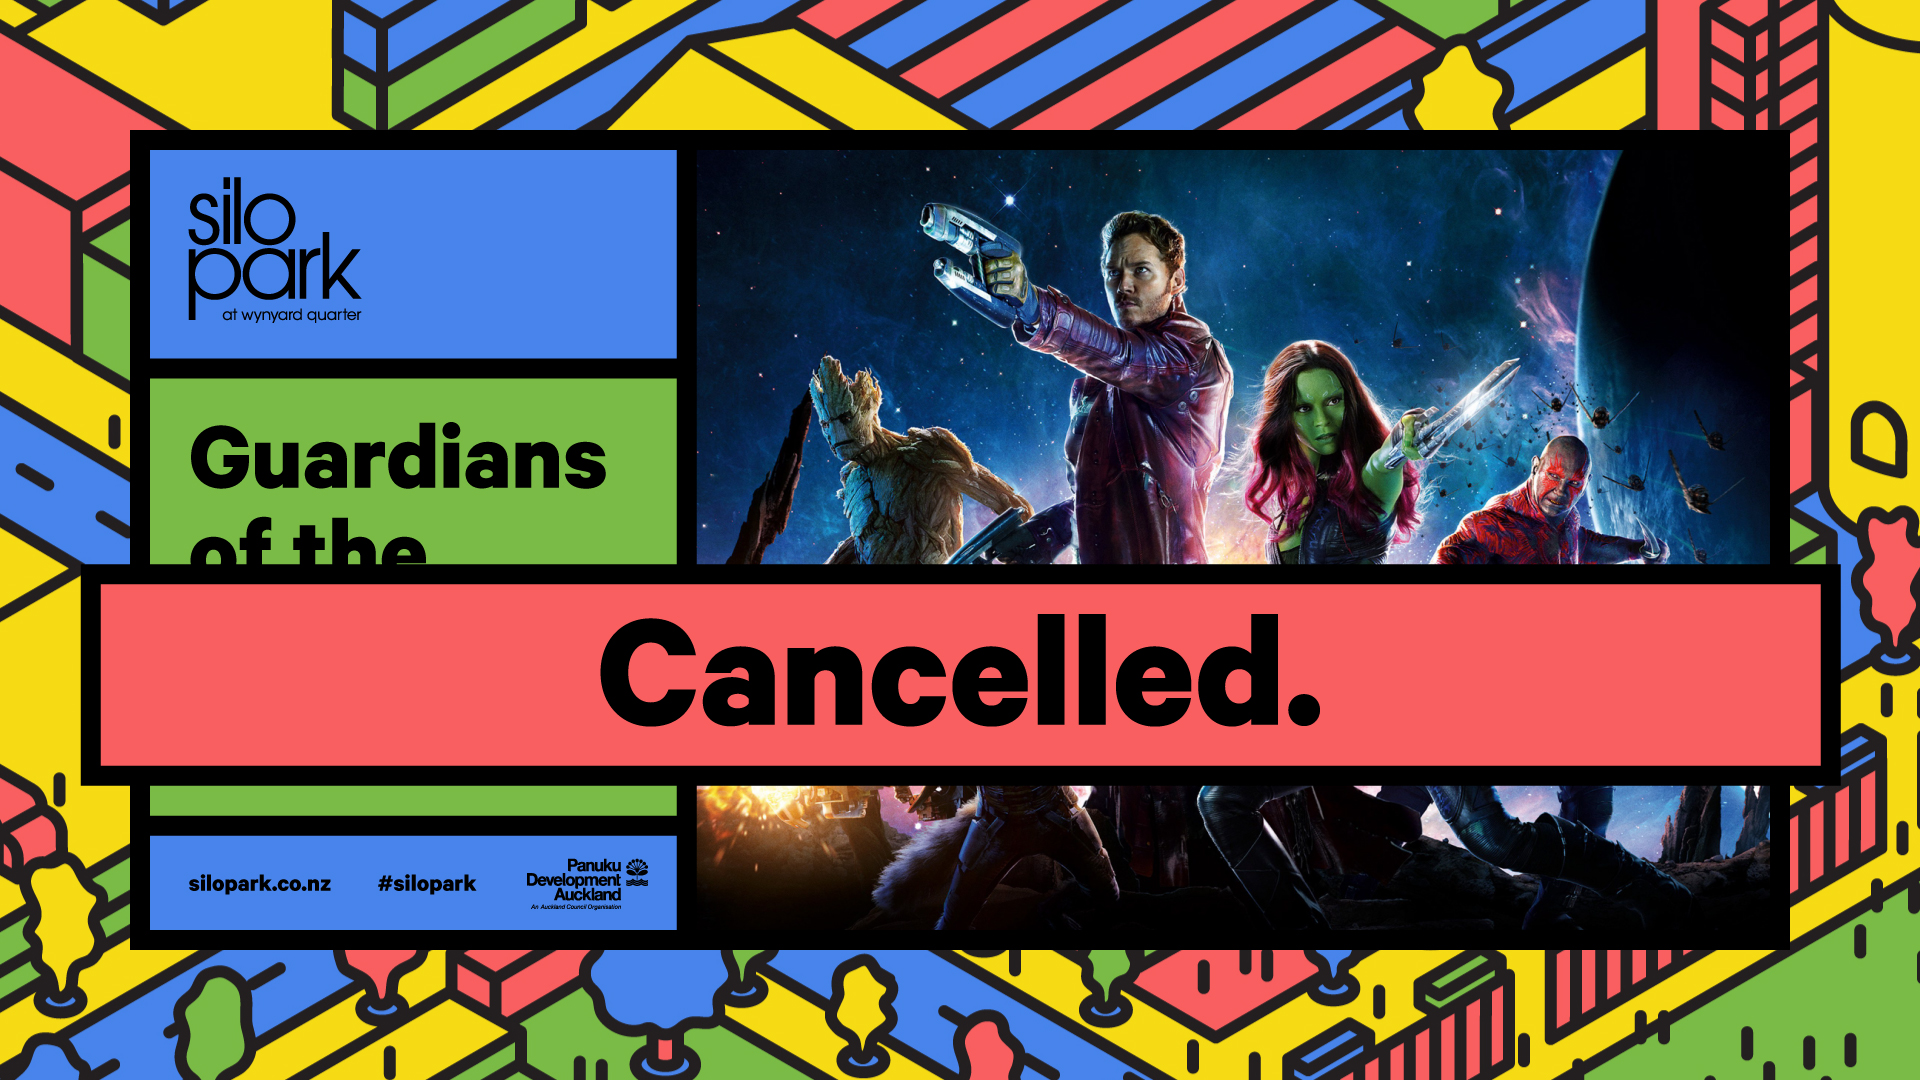 Silo Park Facebook Film_Cancelled_Guardians of the Galaxy.jpg